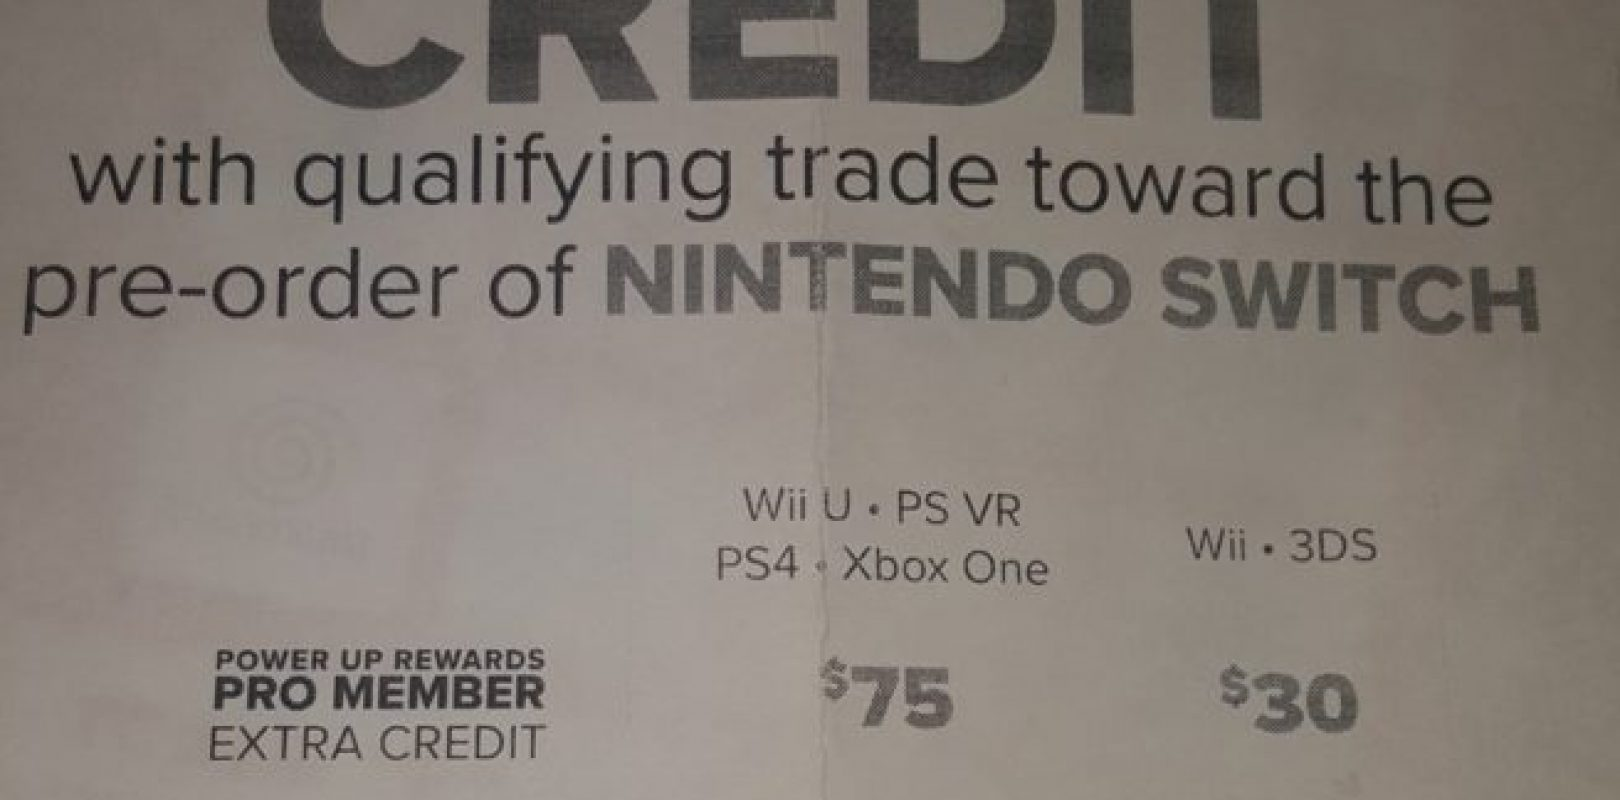 GameStop Giving Up To $75 Extra When Trading in Consoles for